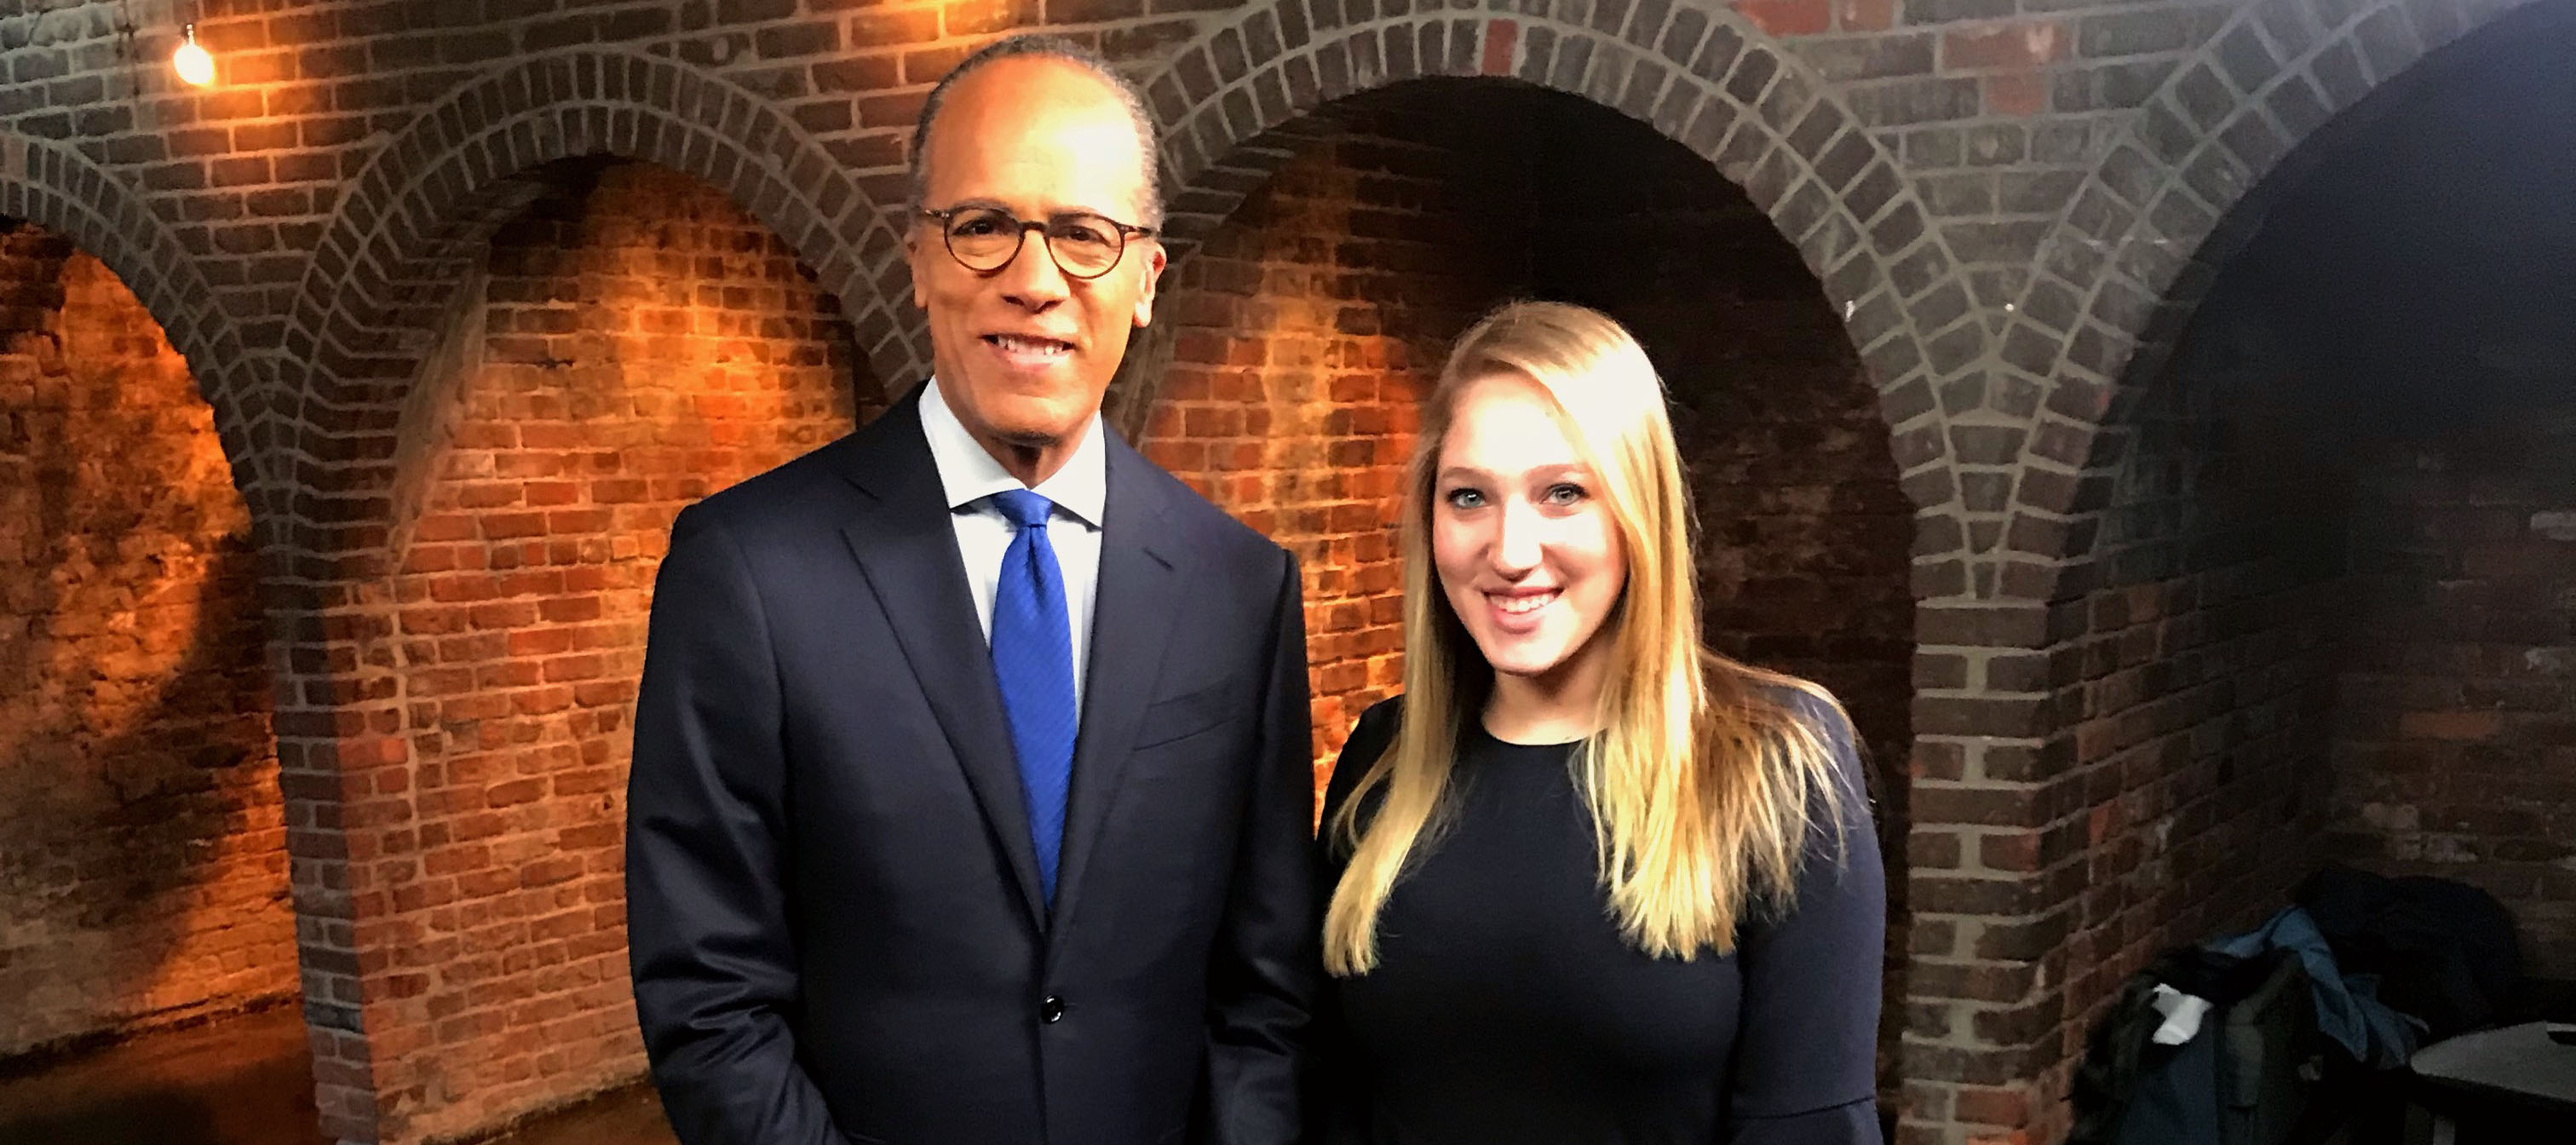 Brittany Paris standing with Lester Holt, anchor for NBC Nightly News and Dateline NBC. Paris received her first on-air credit as an assistant producer for the 'Deadly Detour' episode of Dateline (aired June 22, 2018)